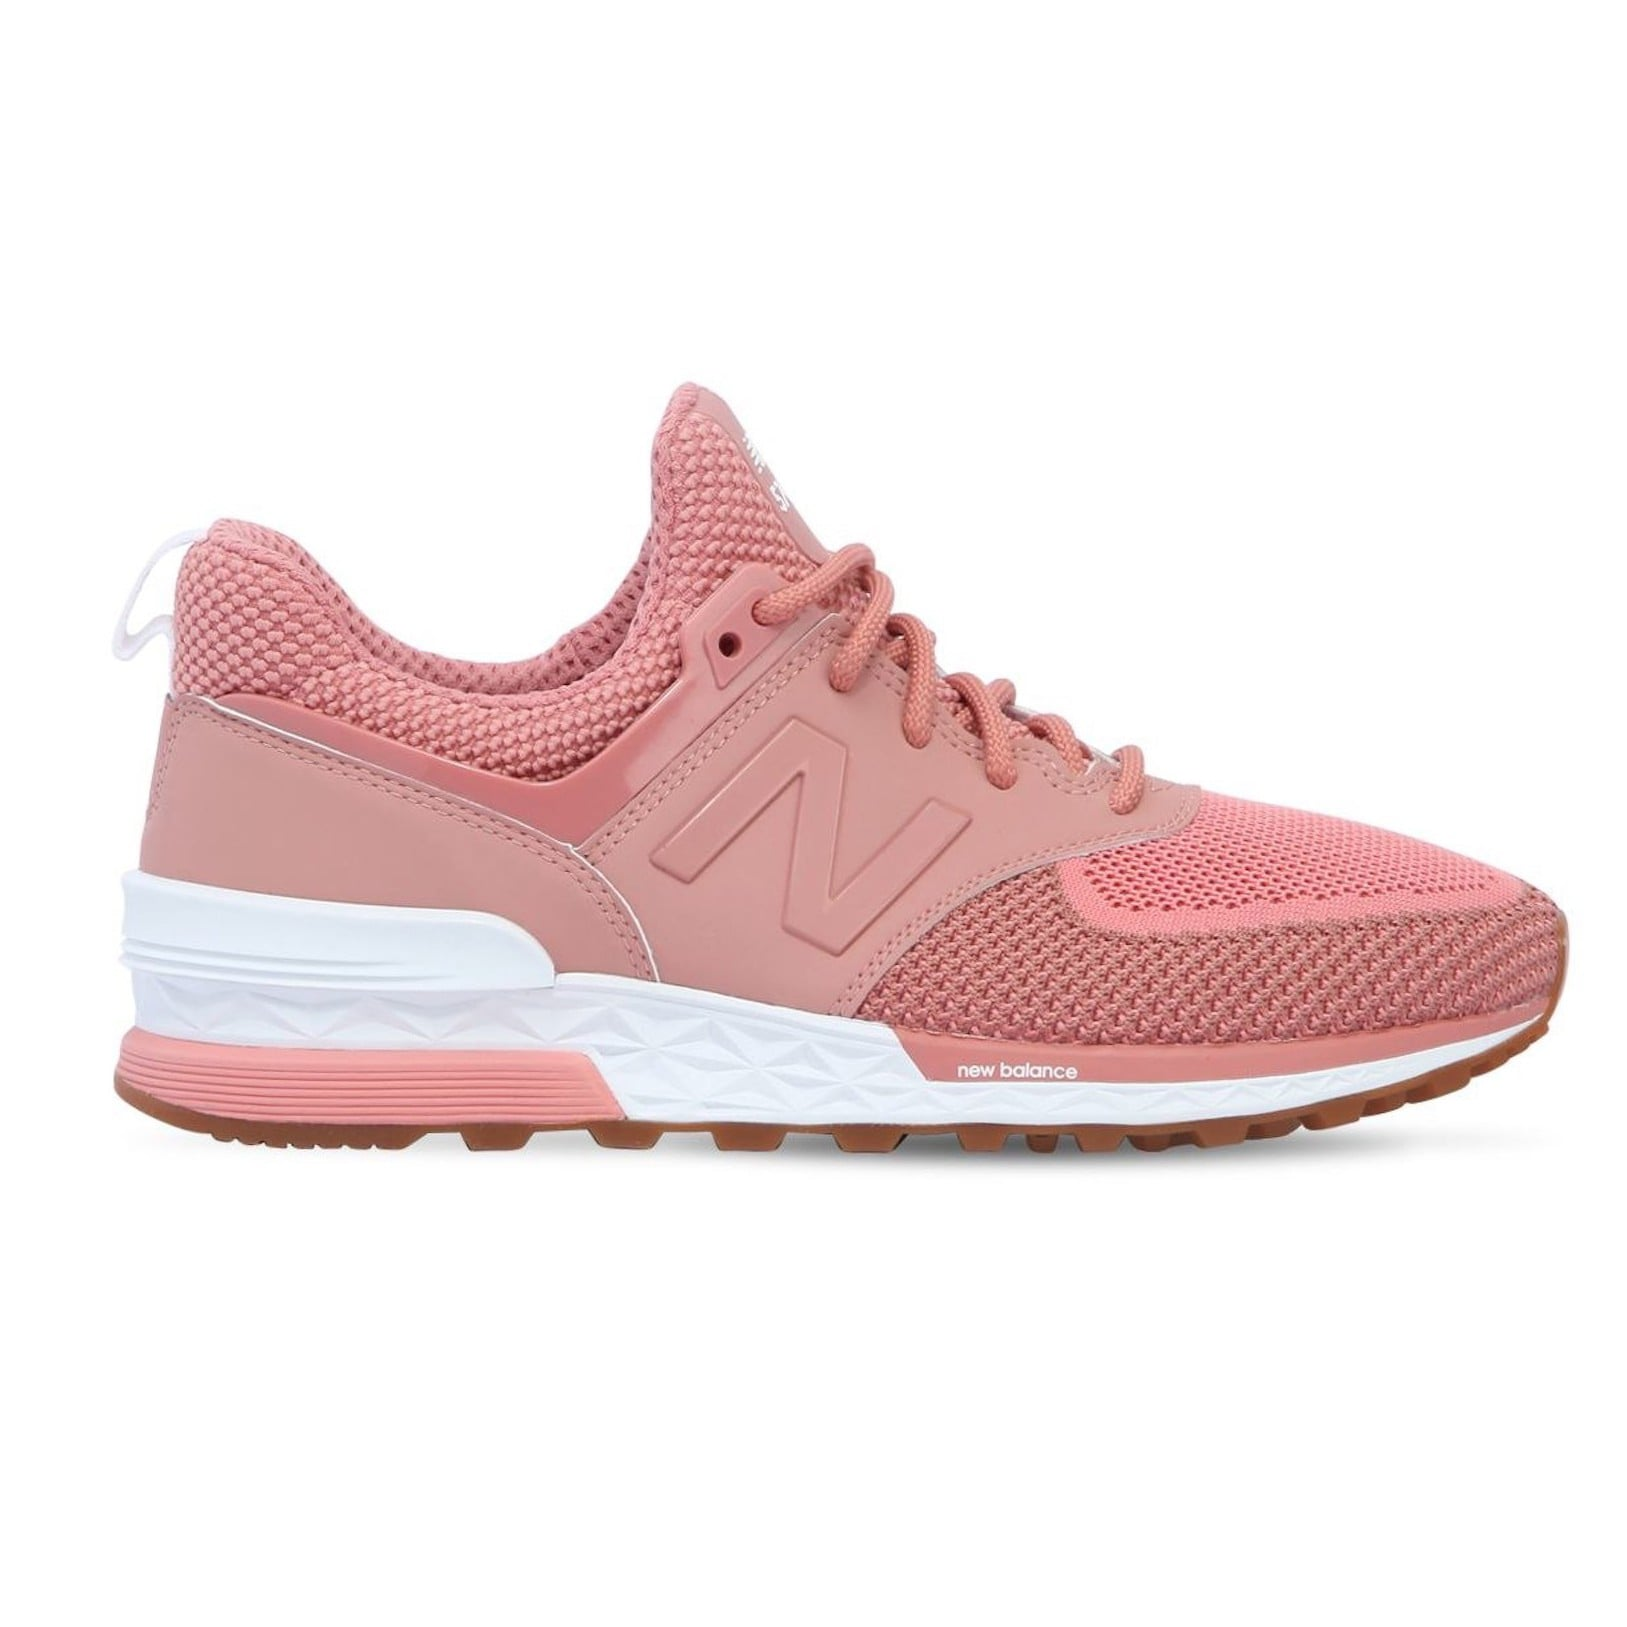 new balance sneakers buy